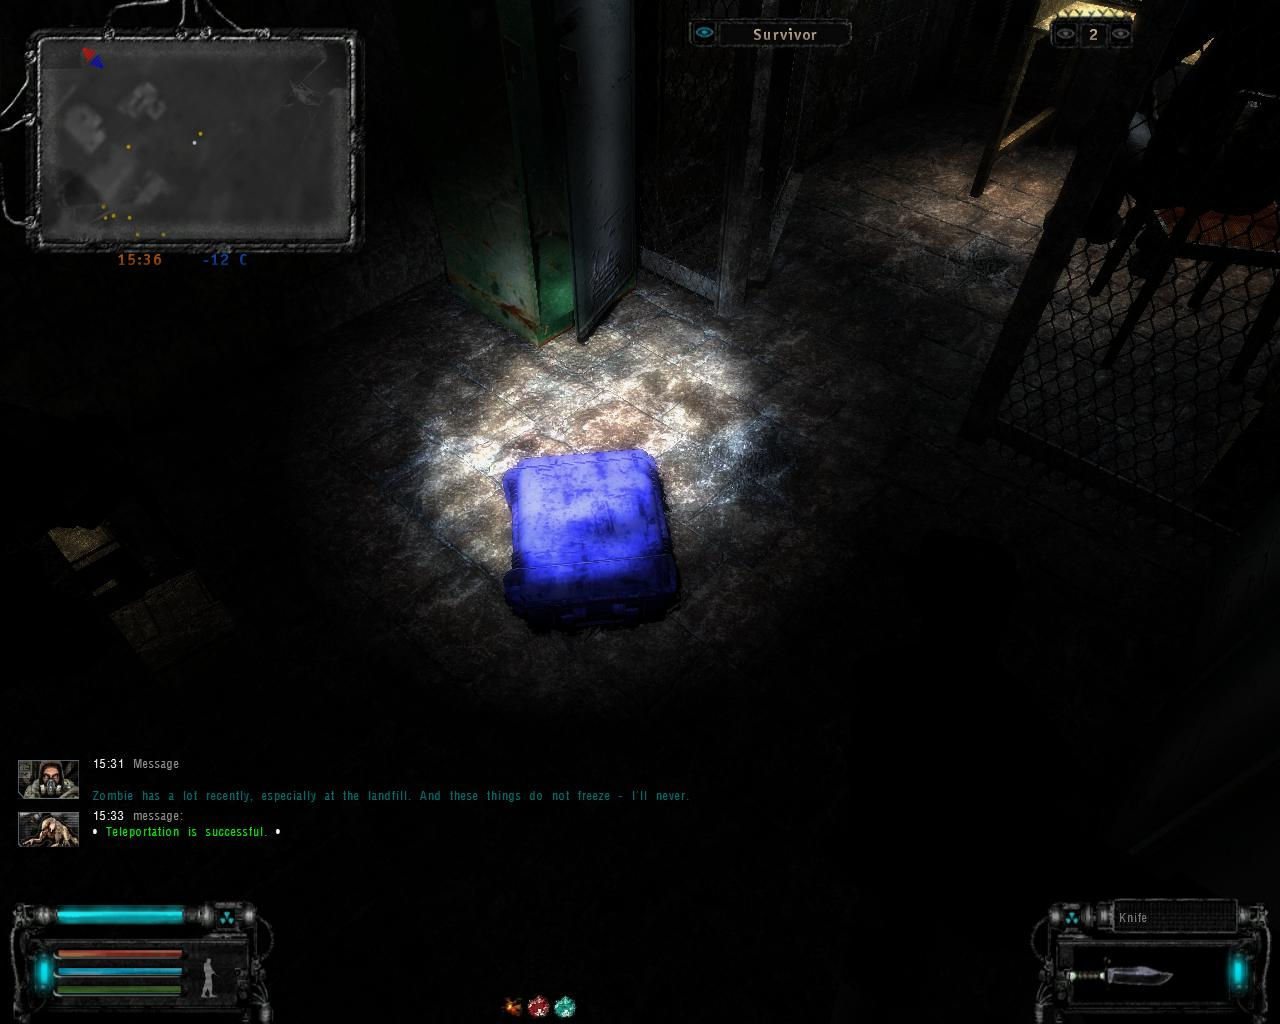 Nature Winter 2.3 BE Deluxe - Find A Secret Blue Box Sidorovich!! Ss_bou45